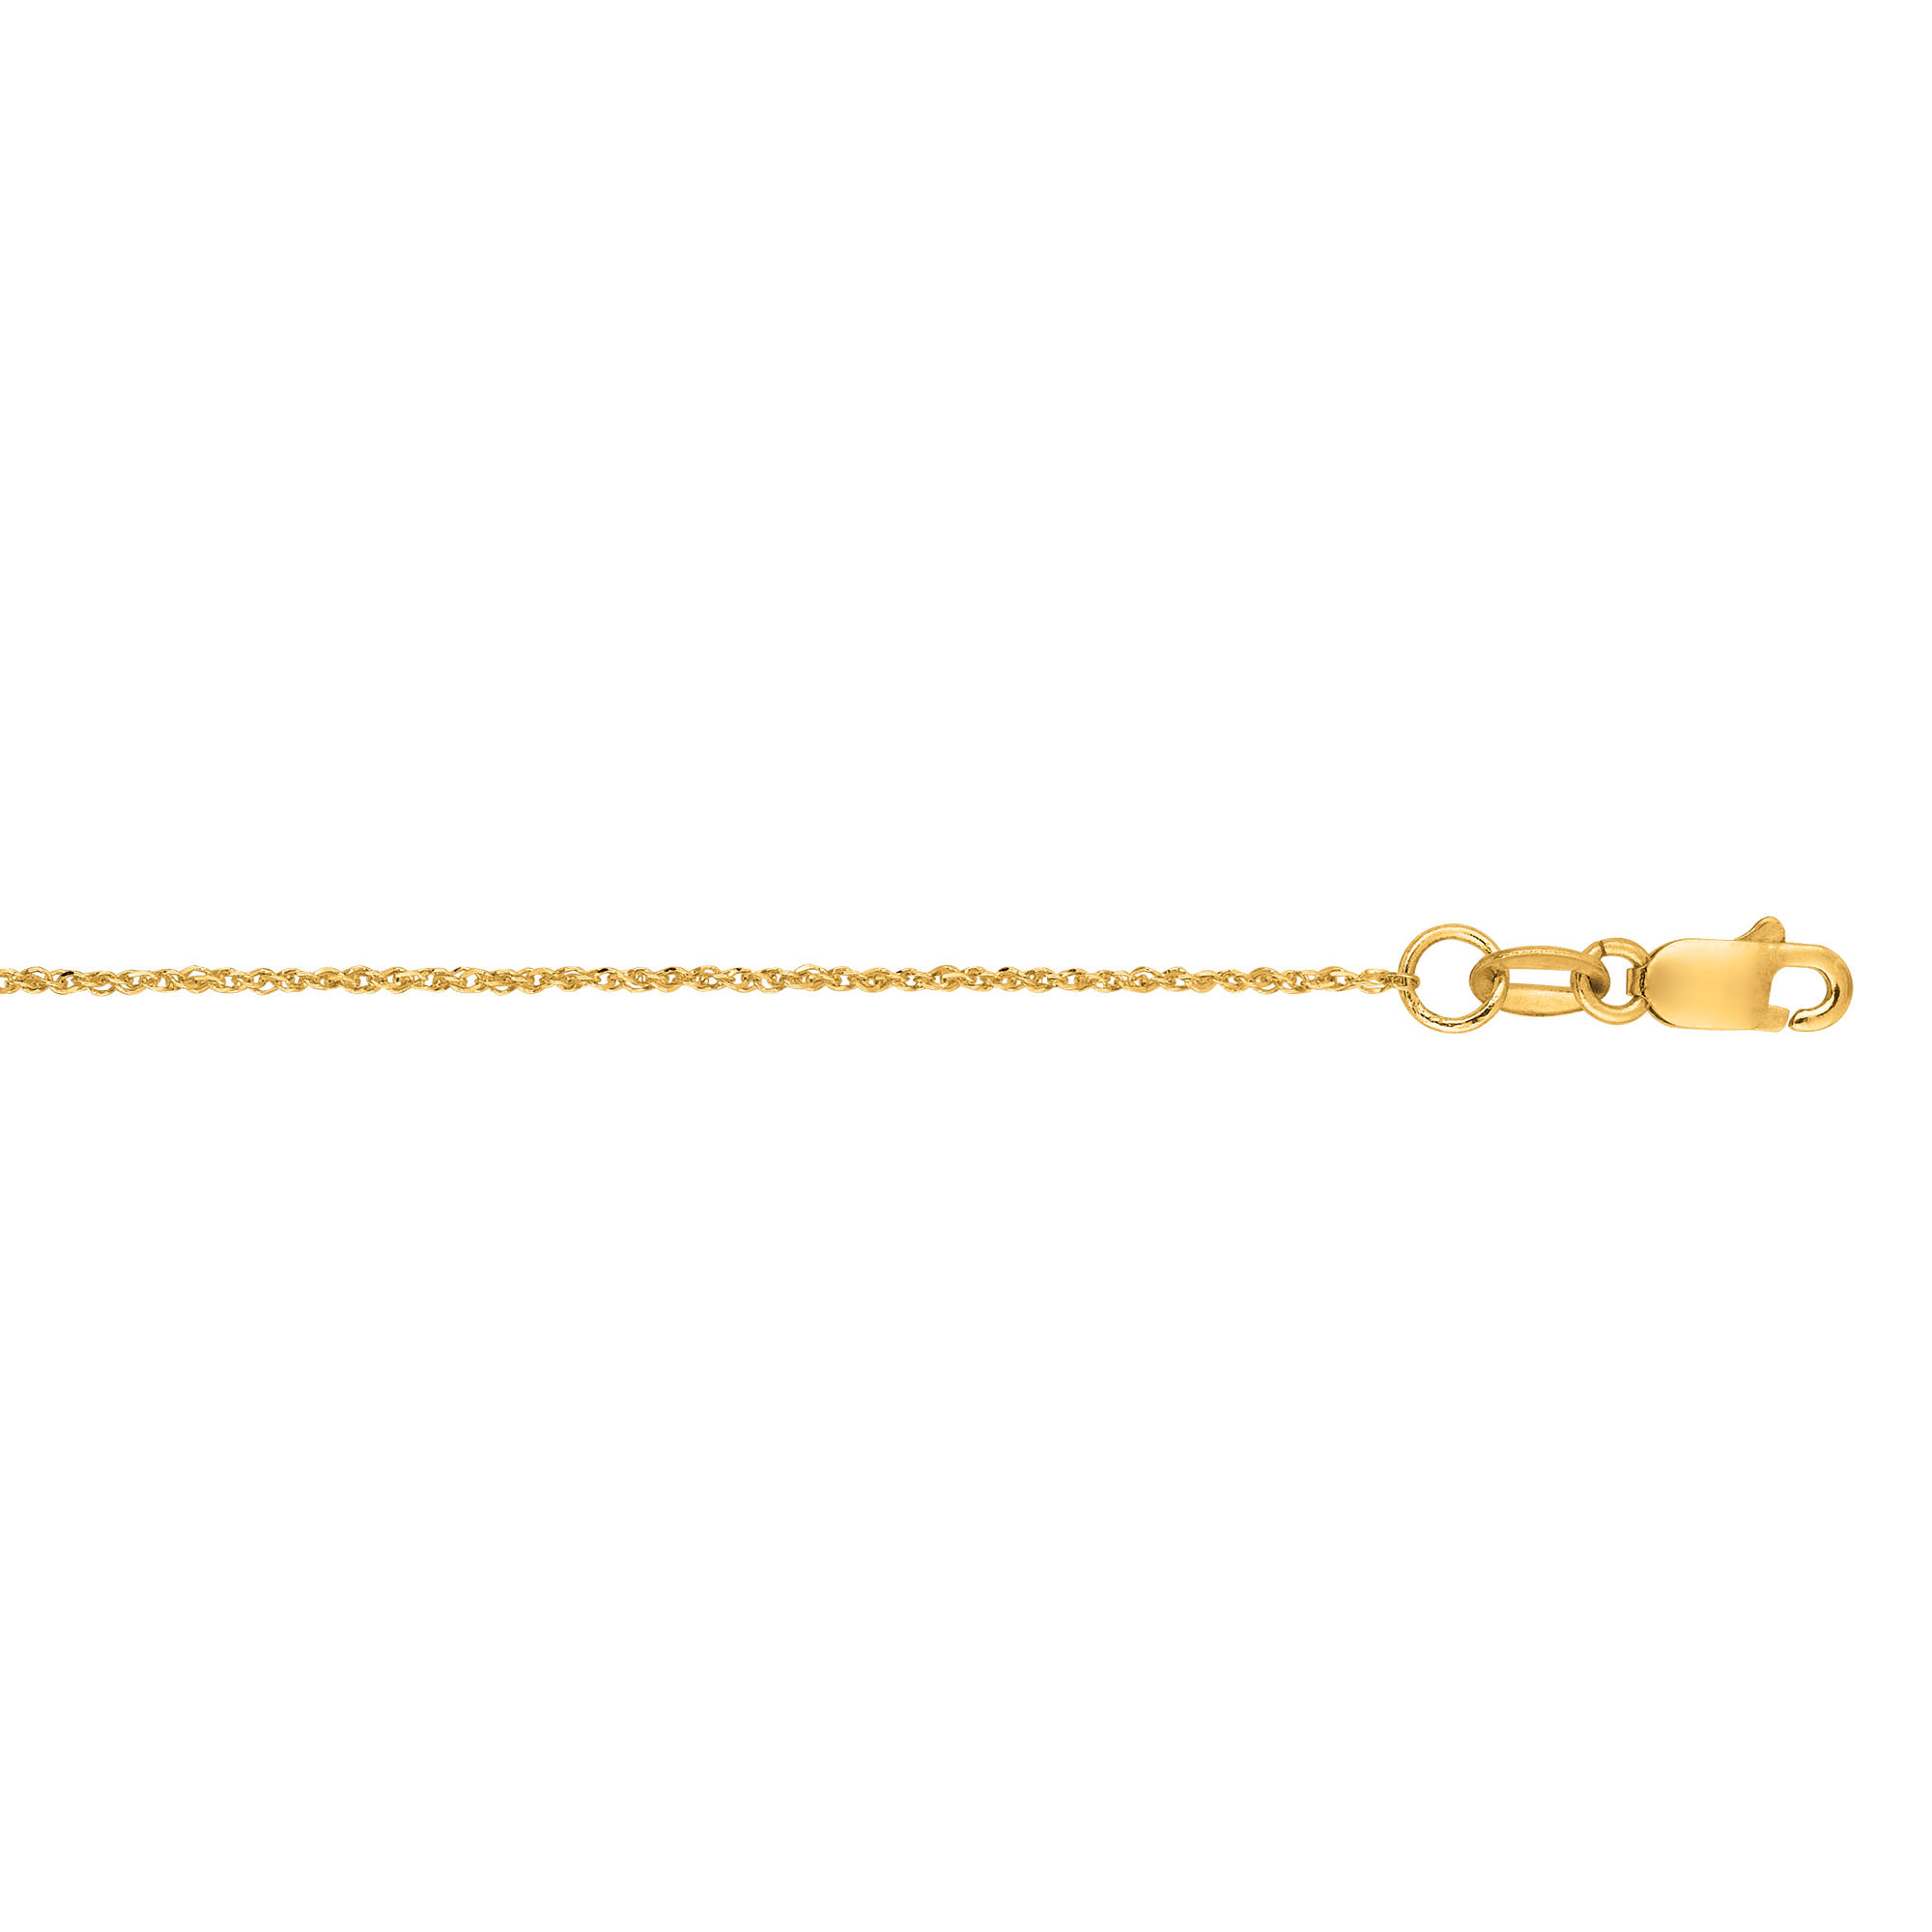 Hollow 10k Gold Ropa Chain For Women 0.9mm Wide